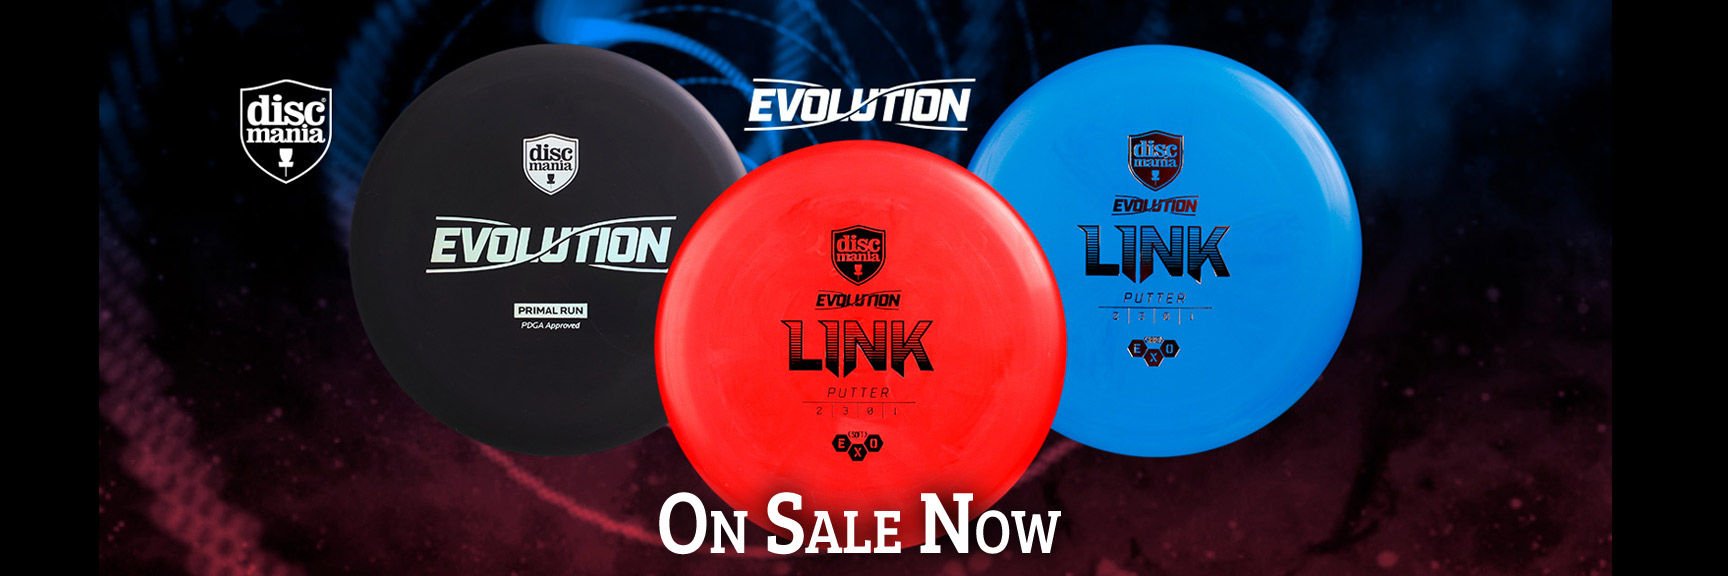 Shows three Discmania Evolution Link putter golf discs. A black Primal Run, a red Hard and a blue Soft. Faint swirls of red and blue appear in the black background. The text,